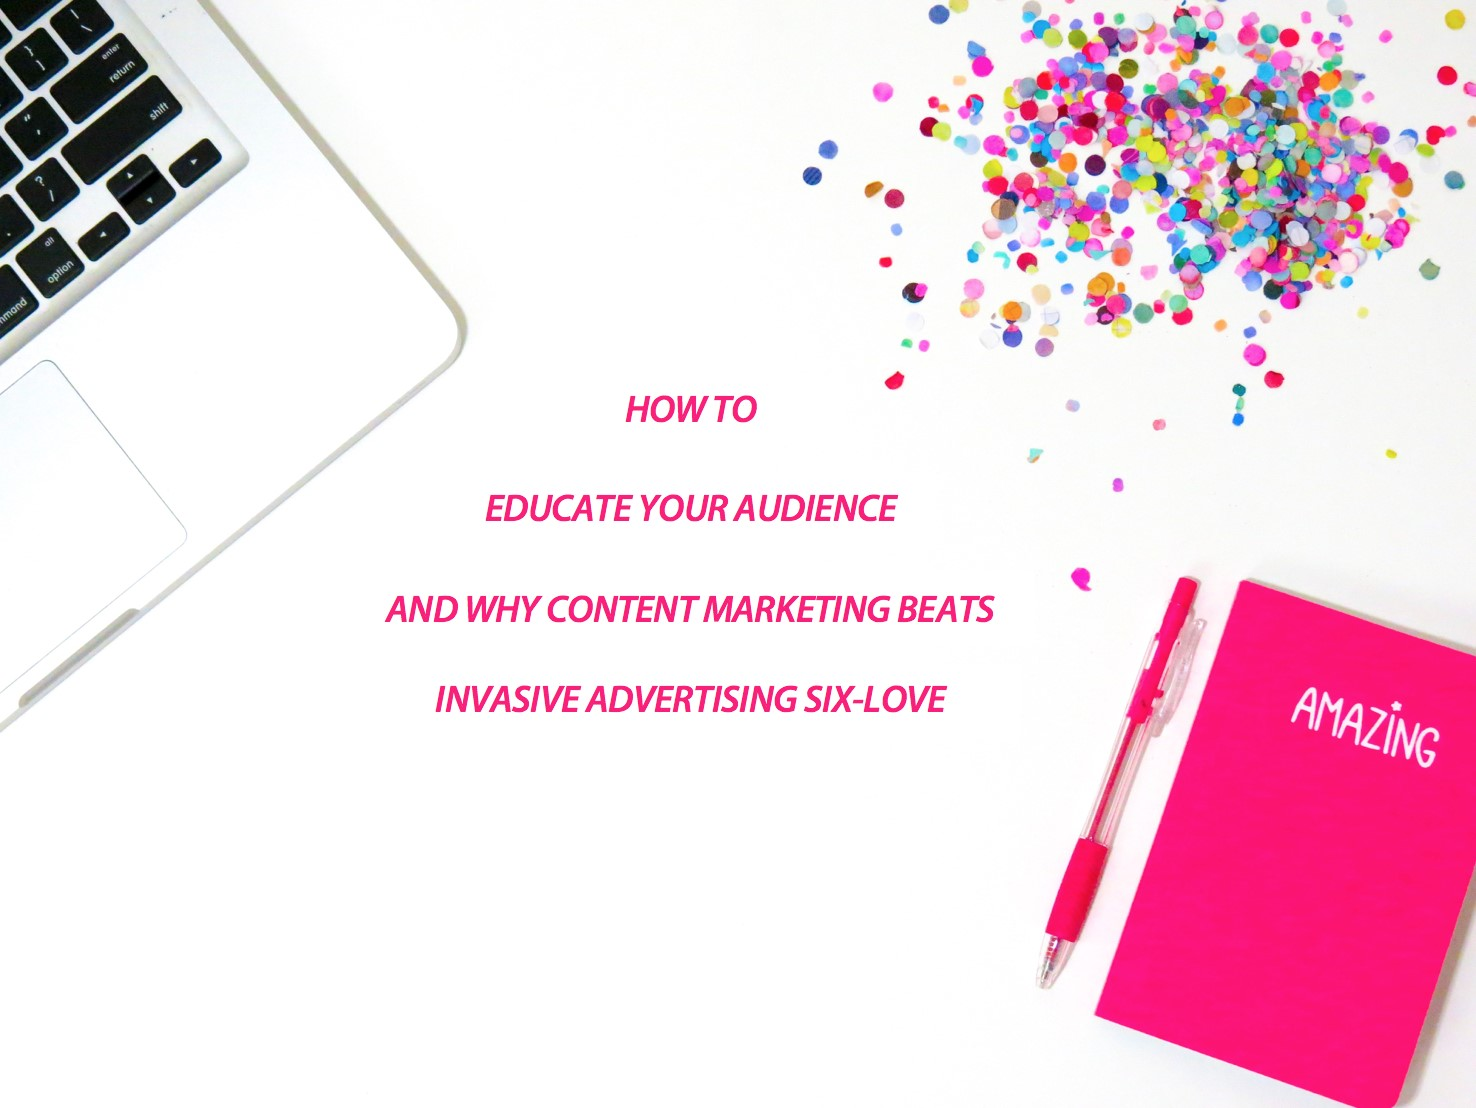 HOW TO EDUCATE YOUR AUDIENCE (AND WHY CONTENT MARKETING BEATS INVASIVE ADVERTISING SIX-LOVE)